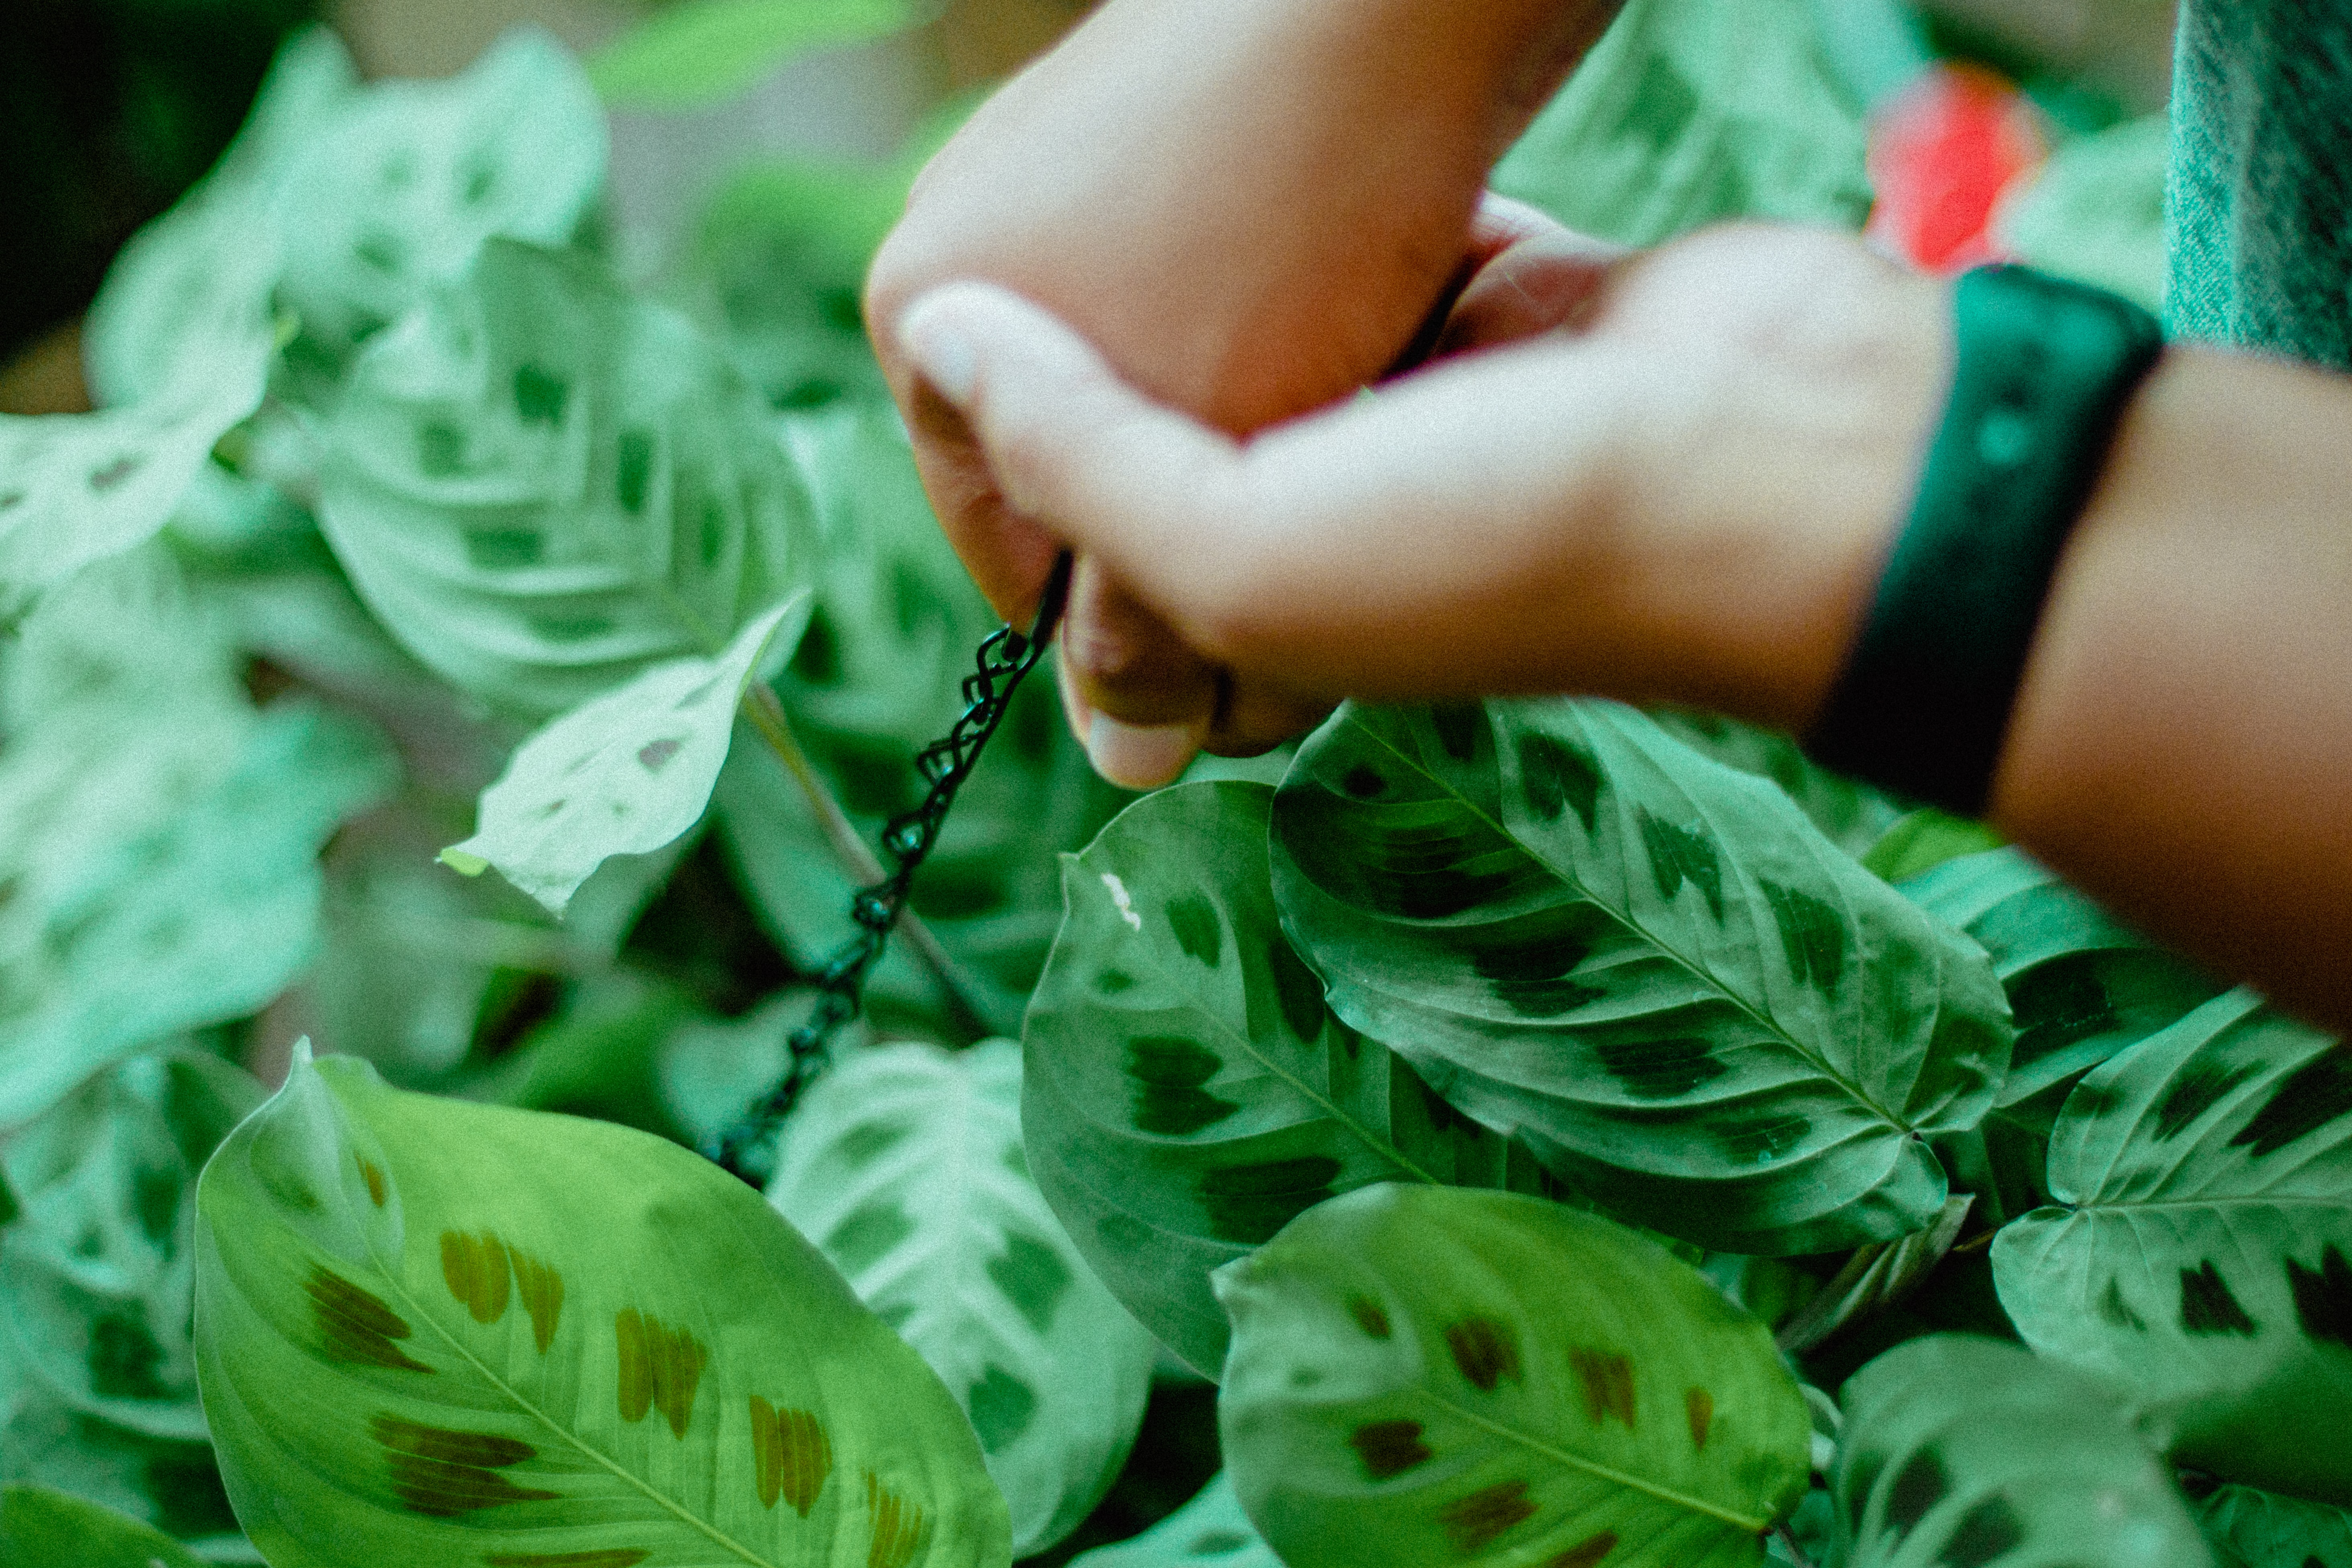 person holding black rope near green leaf plant